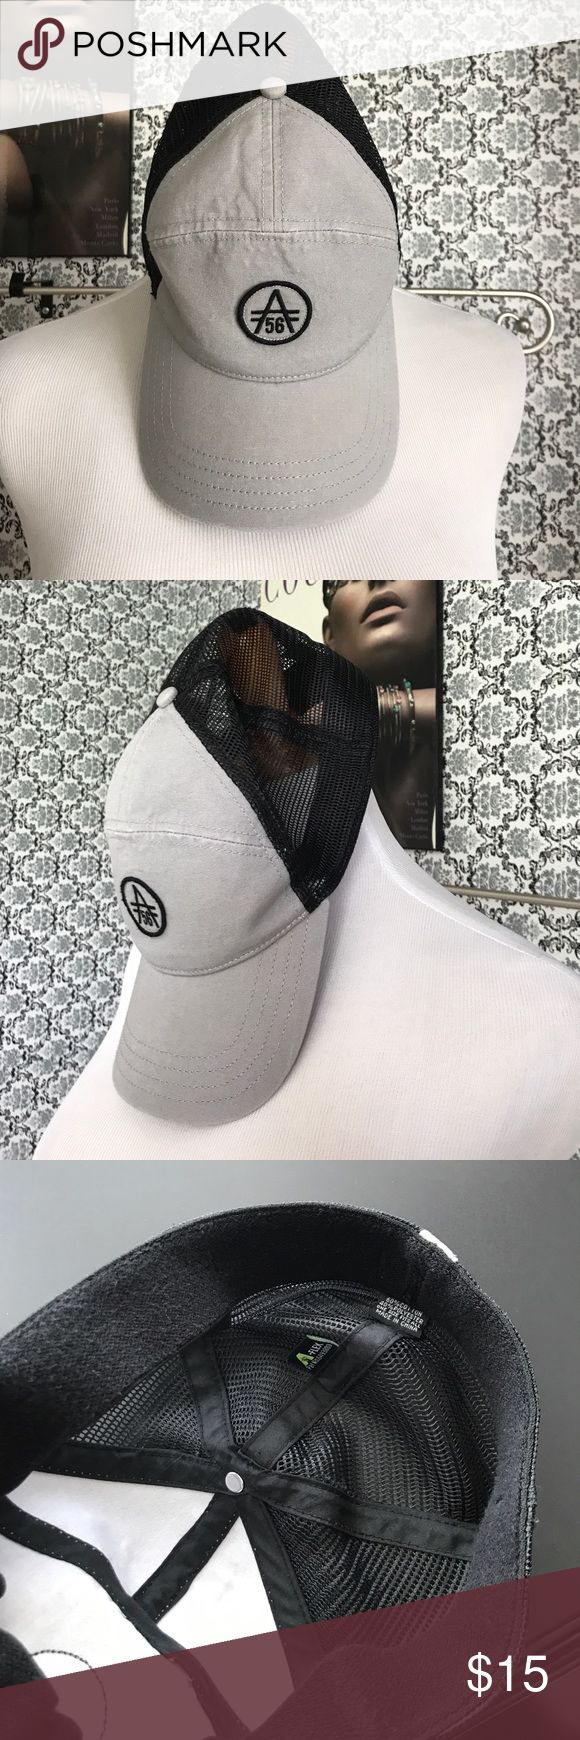 Men's designer baseball cap Nwot Very cool flex style baseball cap light gray and black mesh in the back with a A symbol on the back as well patient # 6493880 A-Flex Accessories Hats